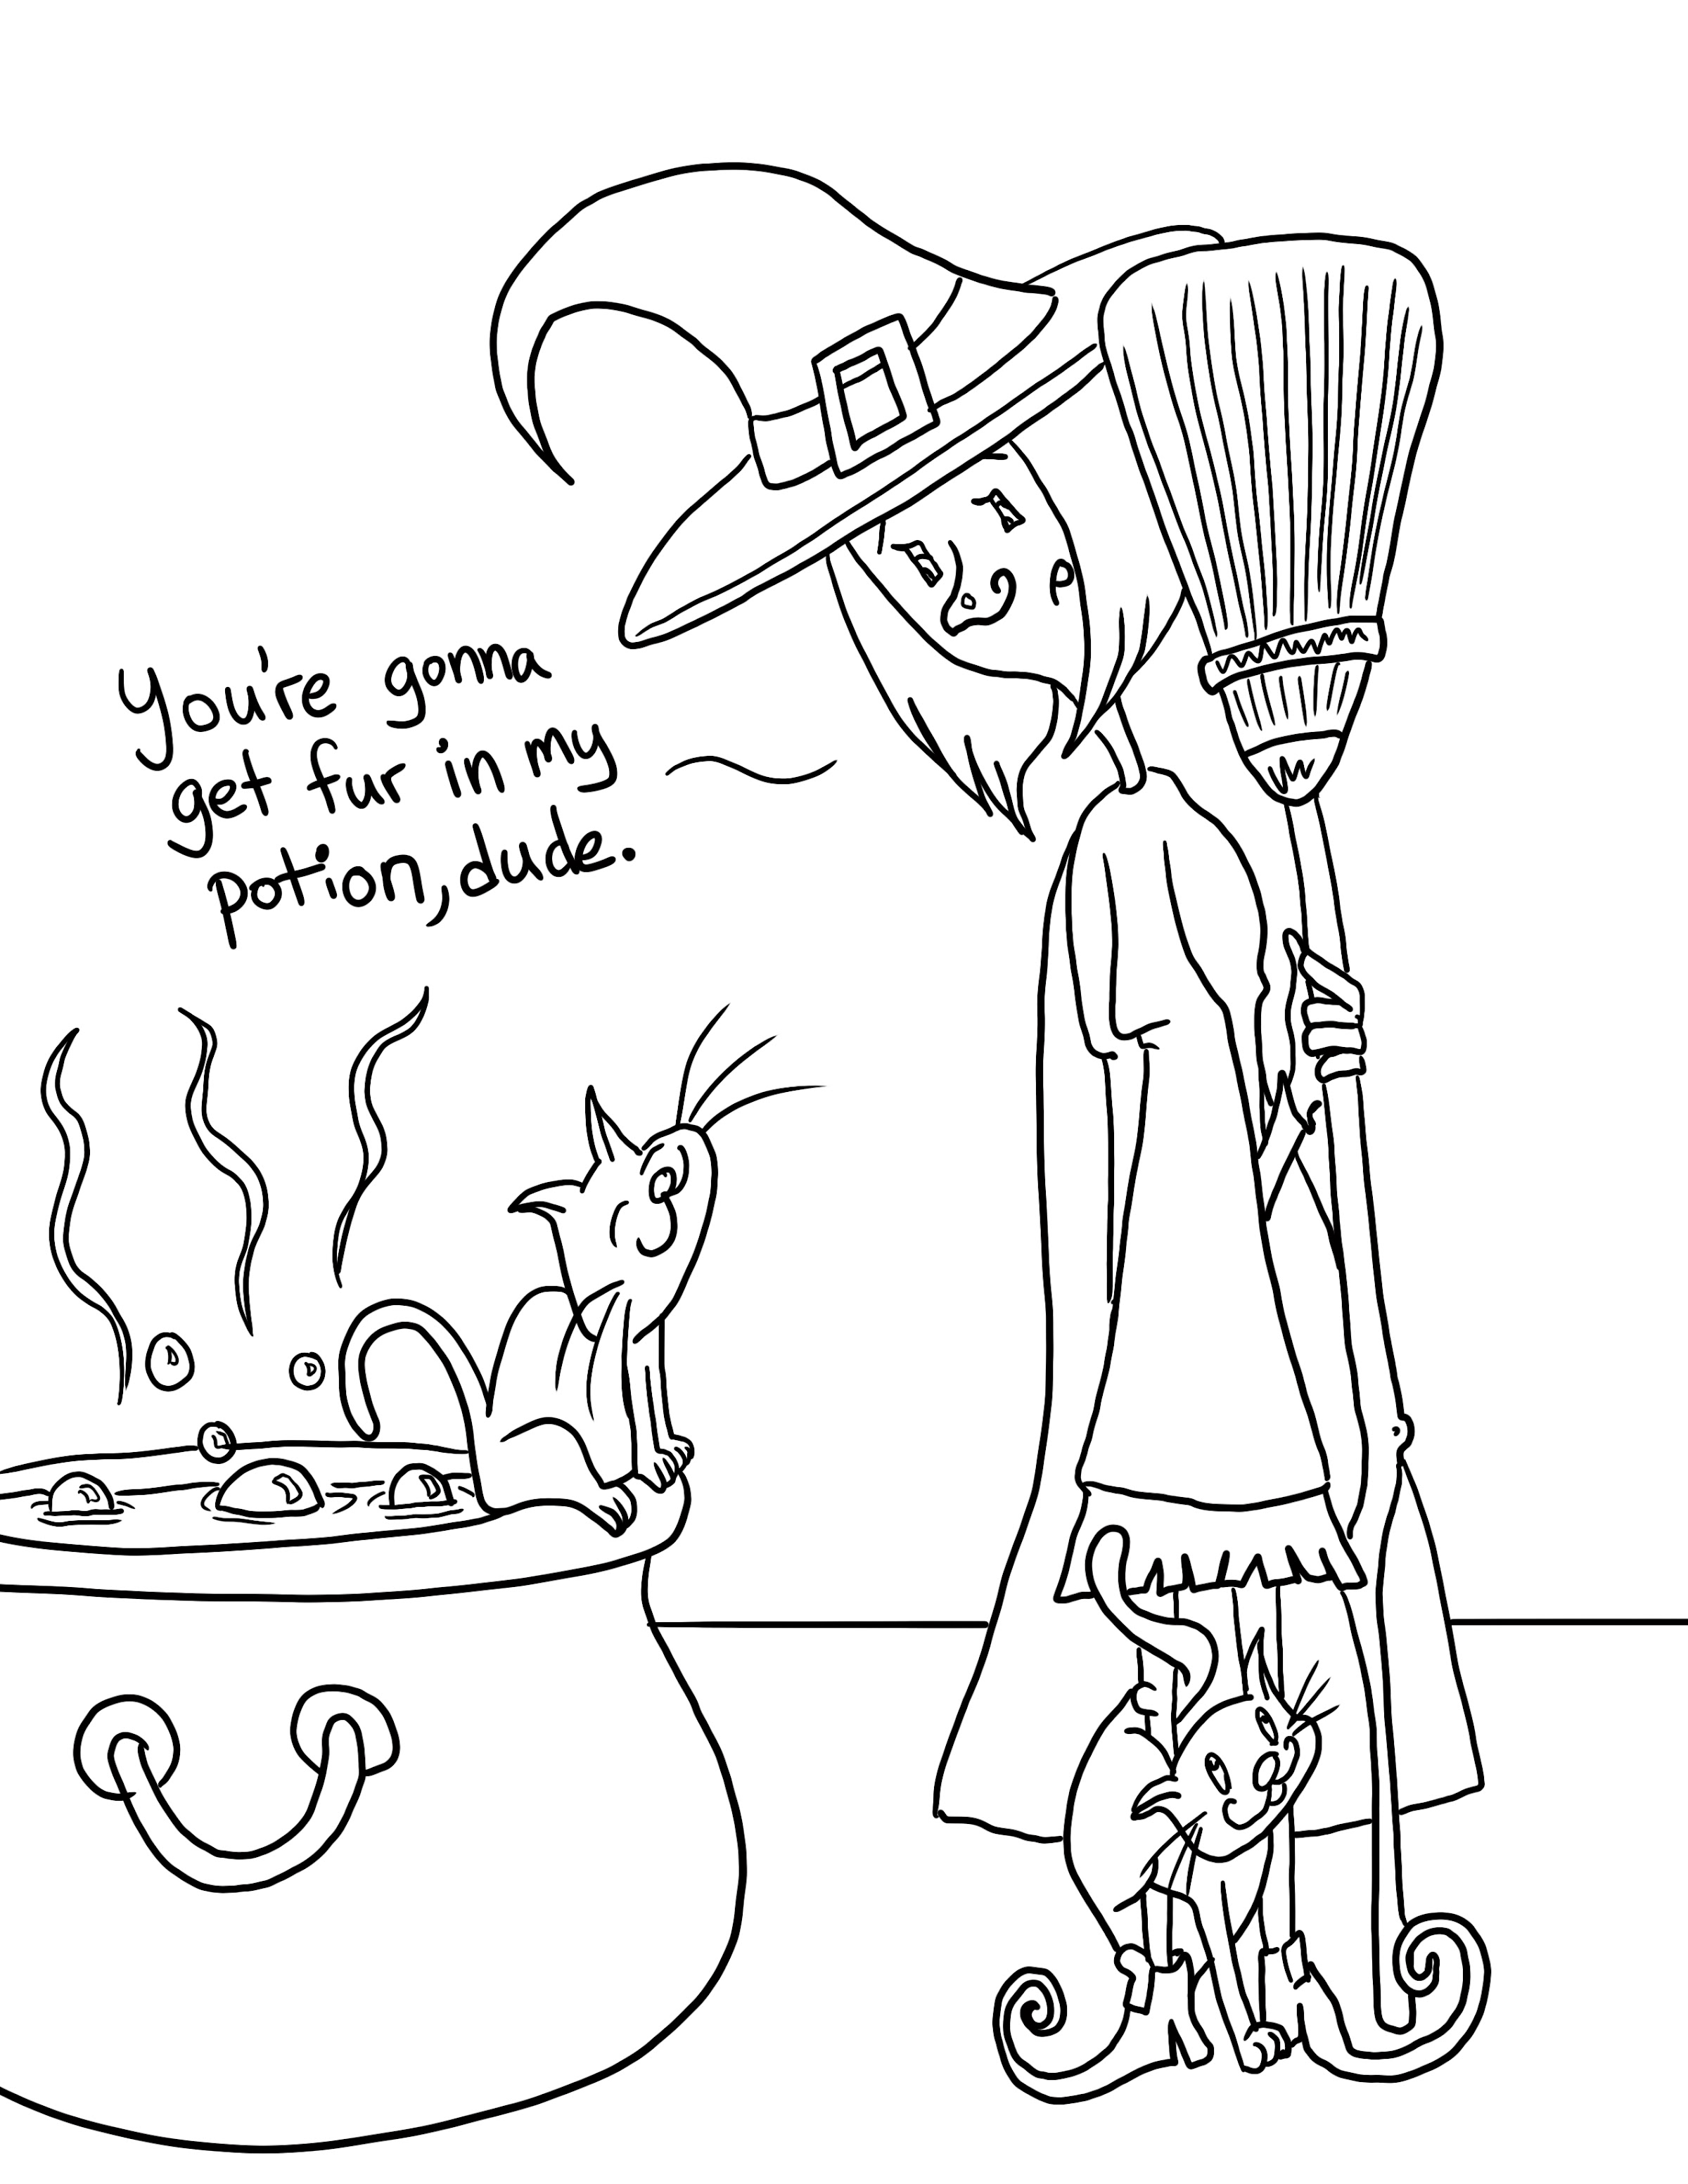 Witch and cats coloring page